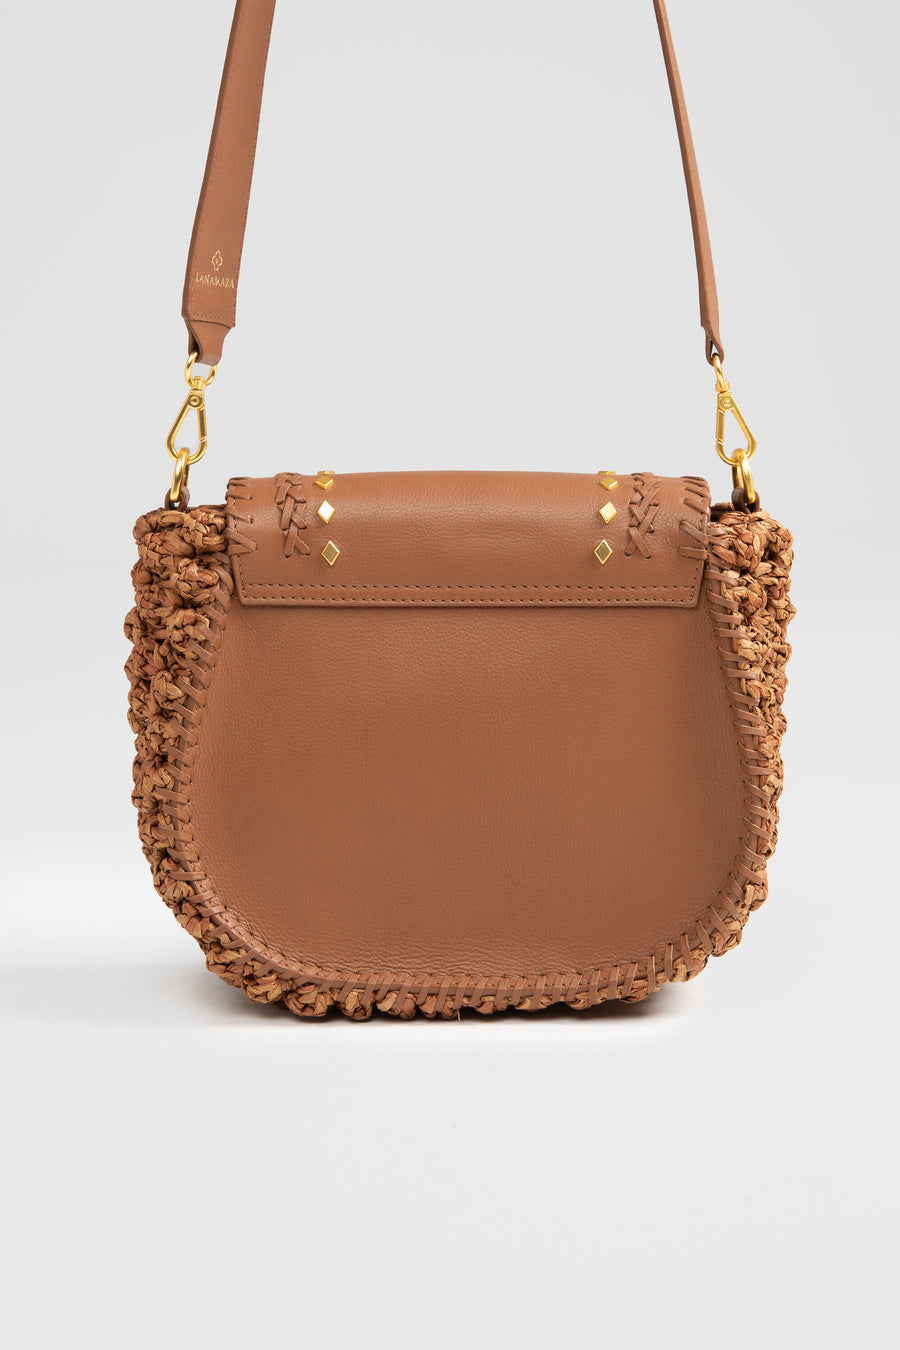 Grace Saddlebag - Sienna